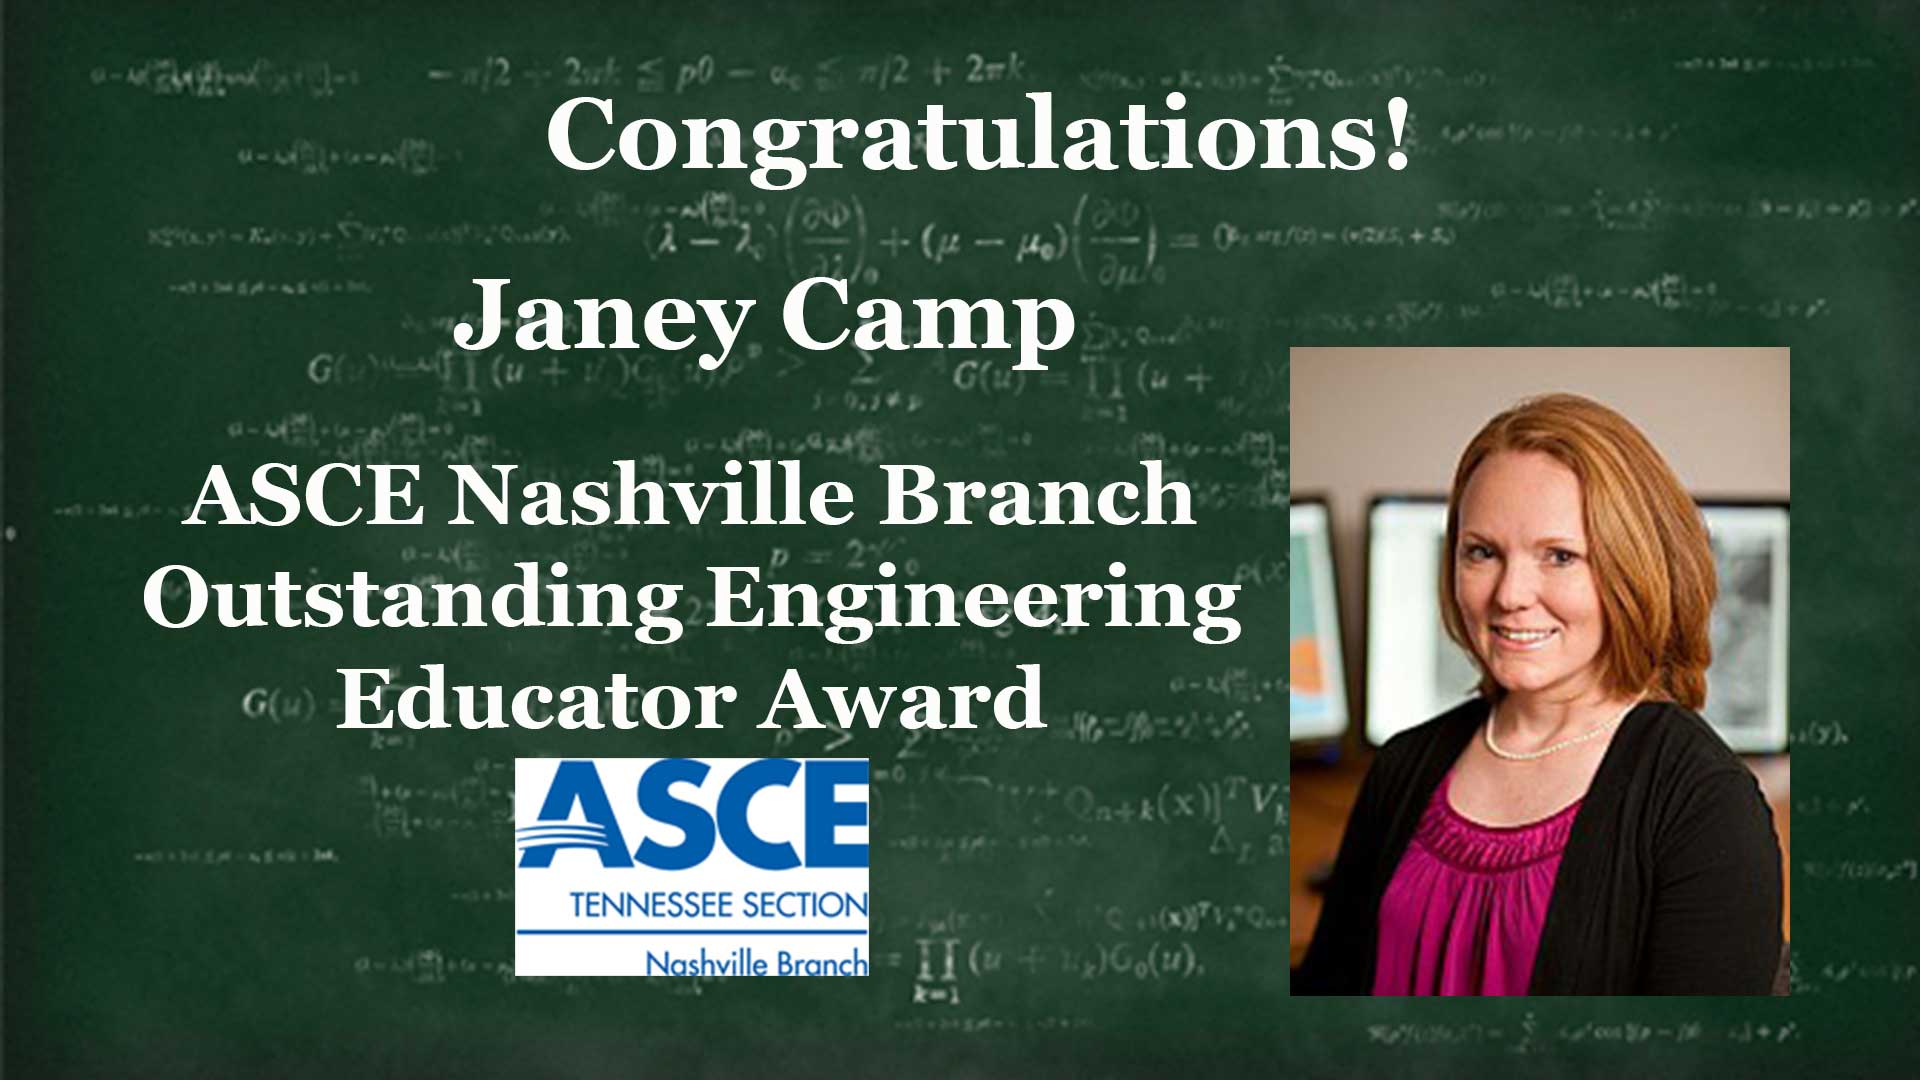 JaneyCamp-OustandingEducator